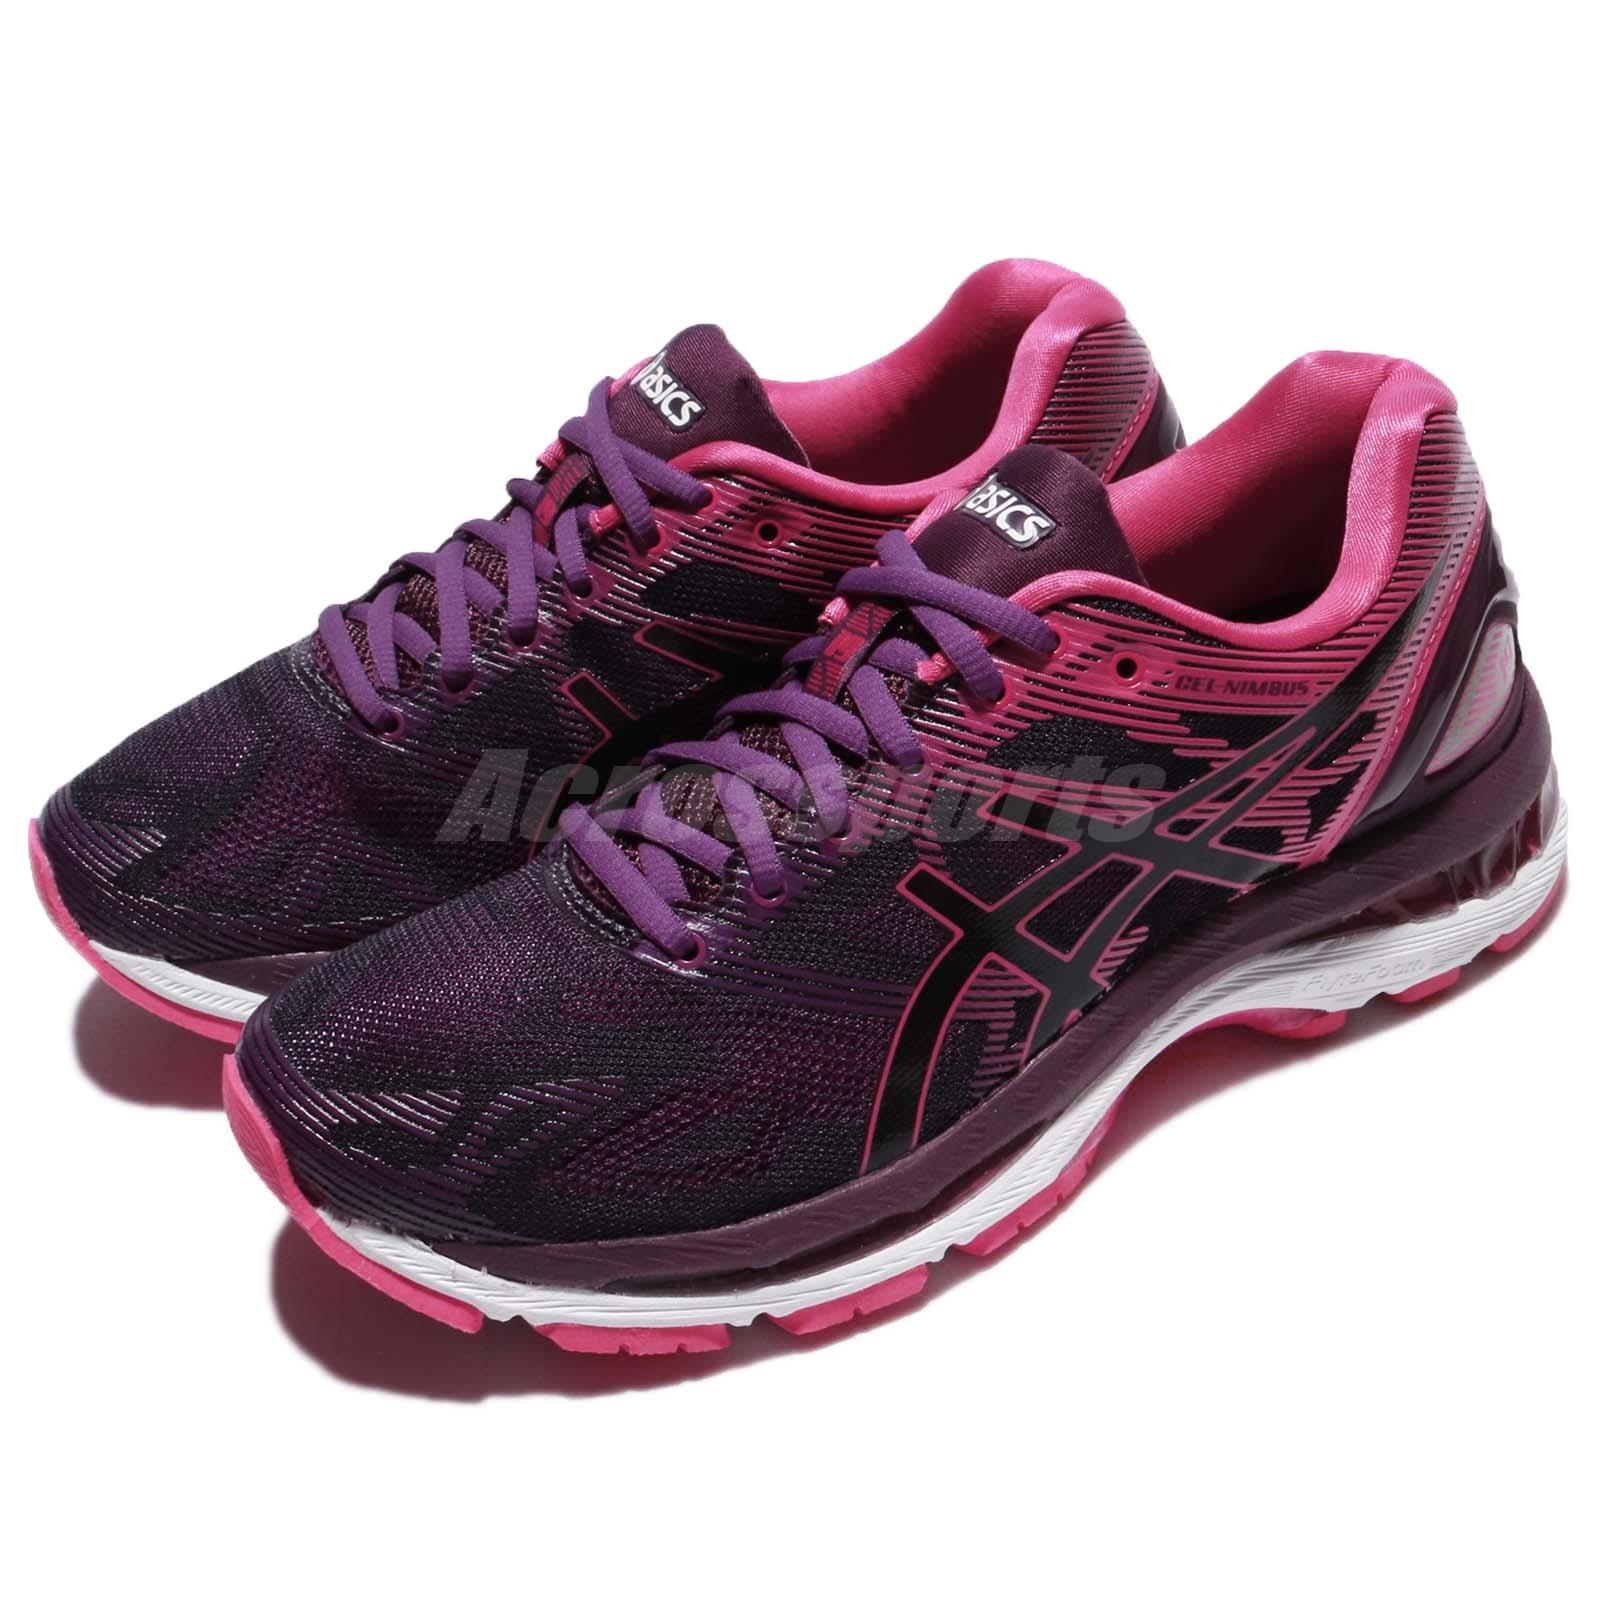 new arrival f89b9 dfb21 Details about Asics Gel-Nimbus 19 Black Cosmo Pink Women Running Shoes  Sneakers T750N-9020